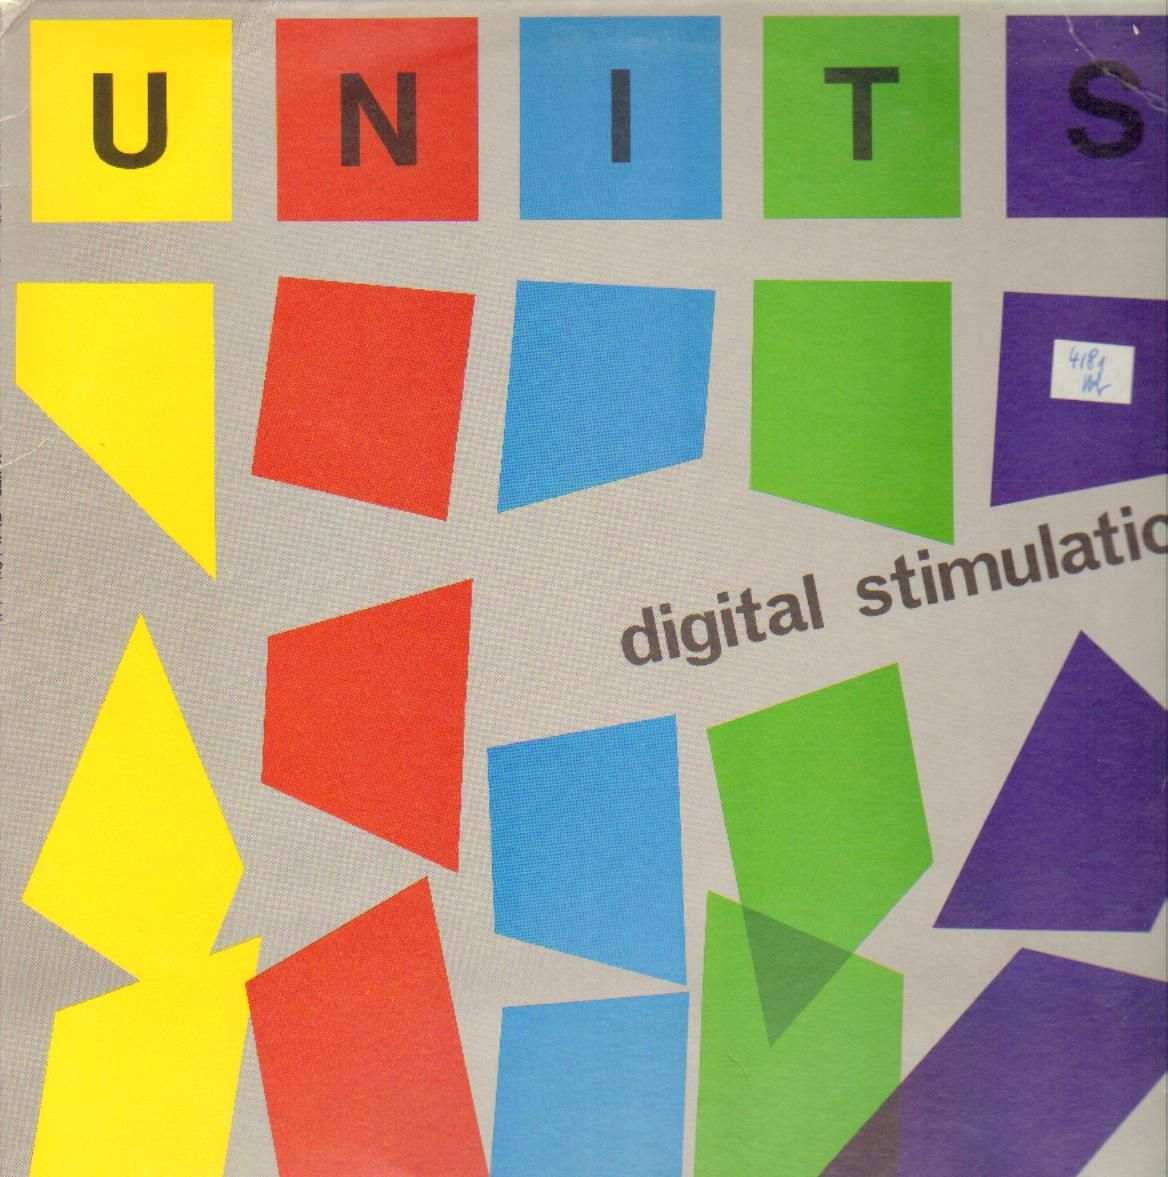 The Units Digital Stimulation